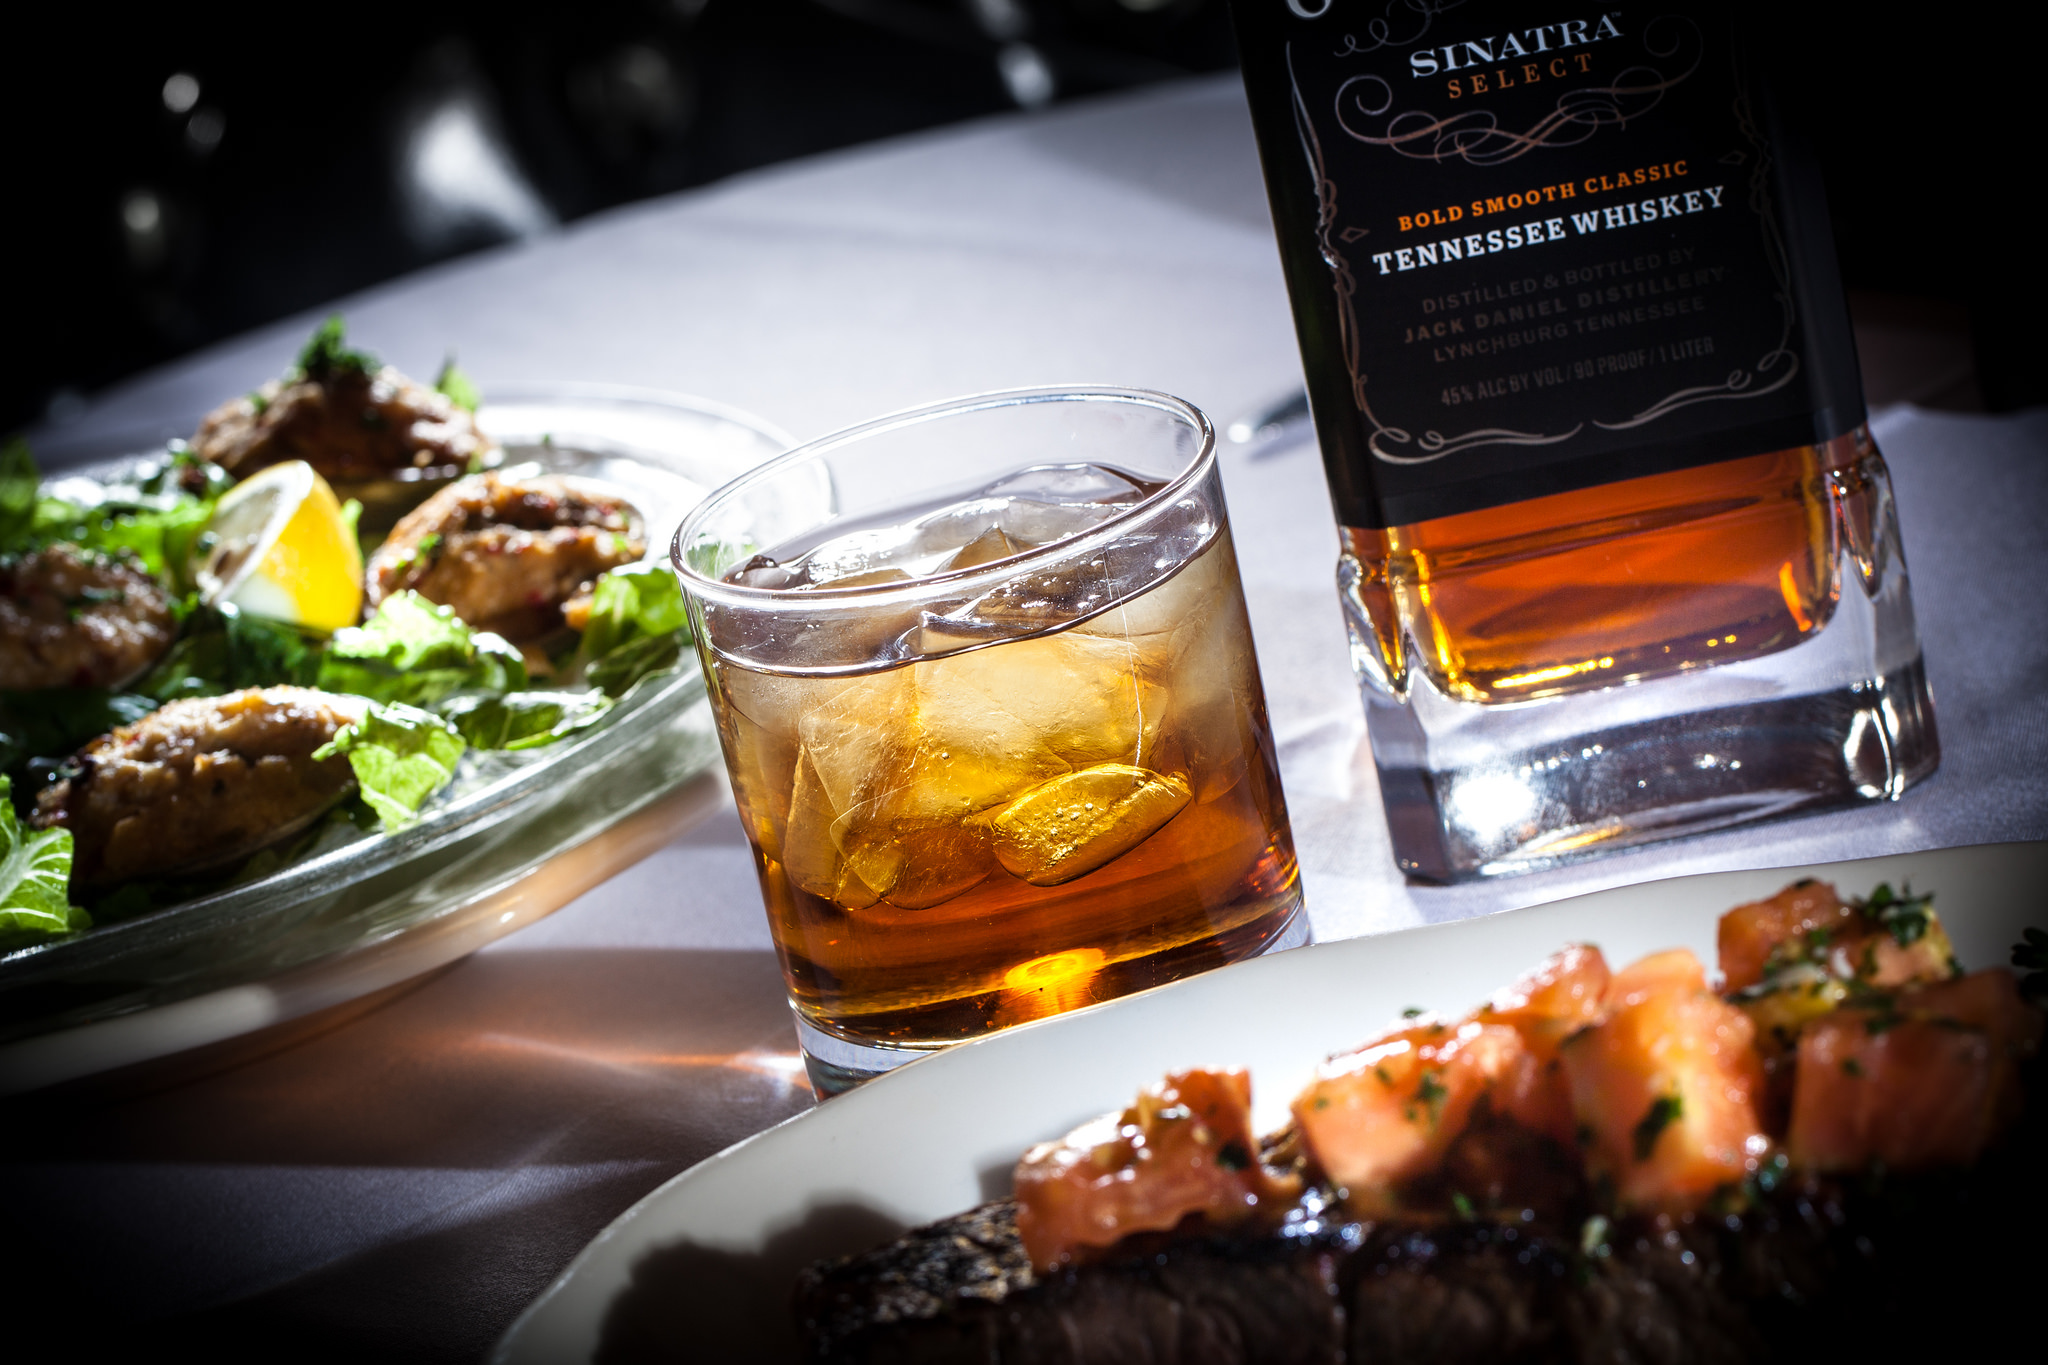 Clams casino, New York strip and Jack Daniels will be part of Frank's Menu at the Golden Steer, photo courtesy of Vox Solid Communications